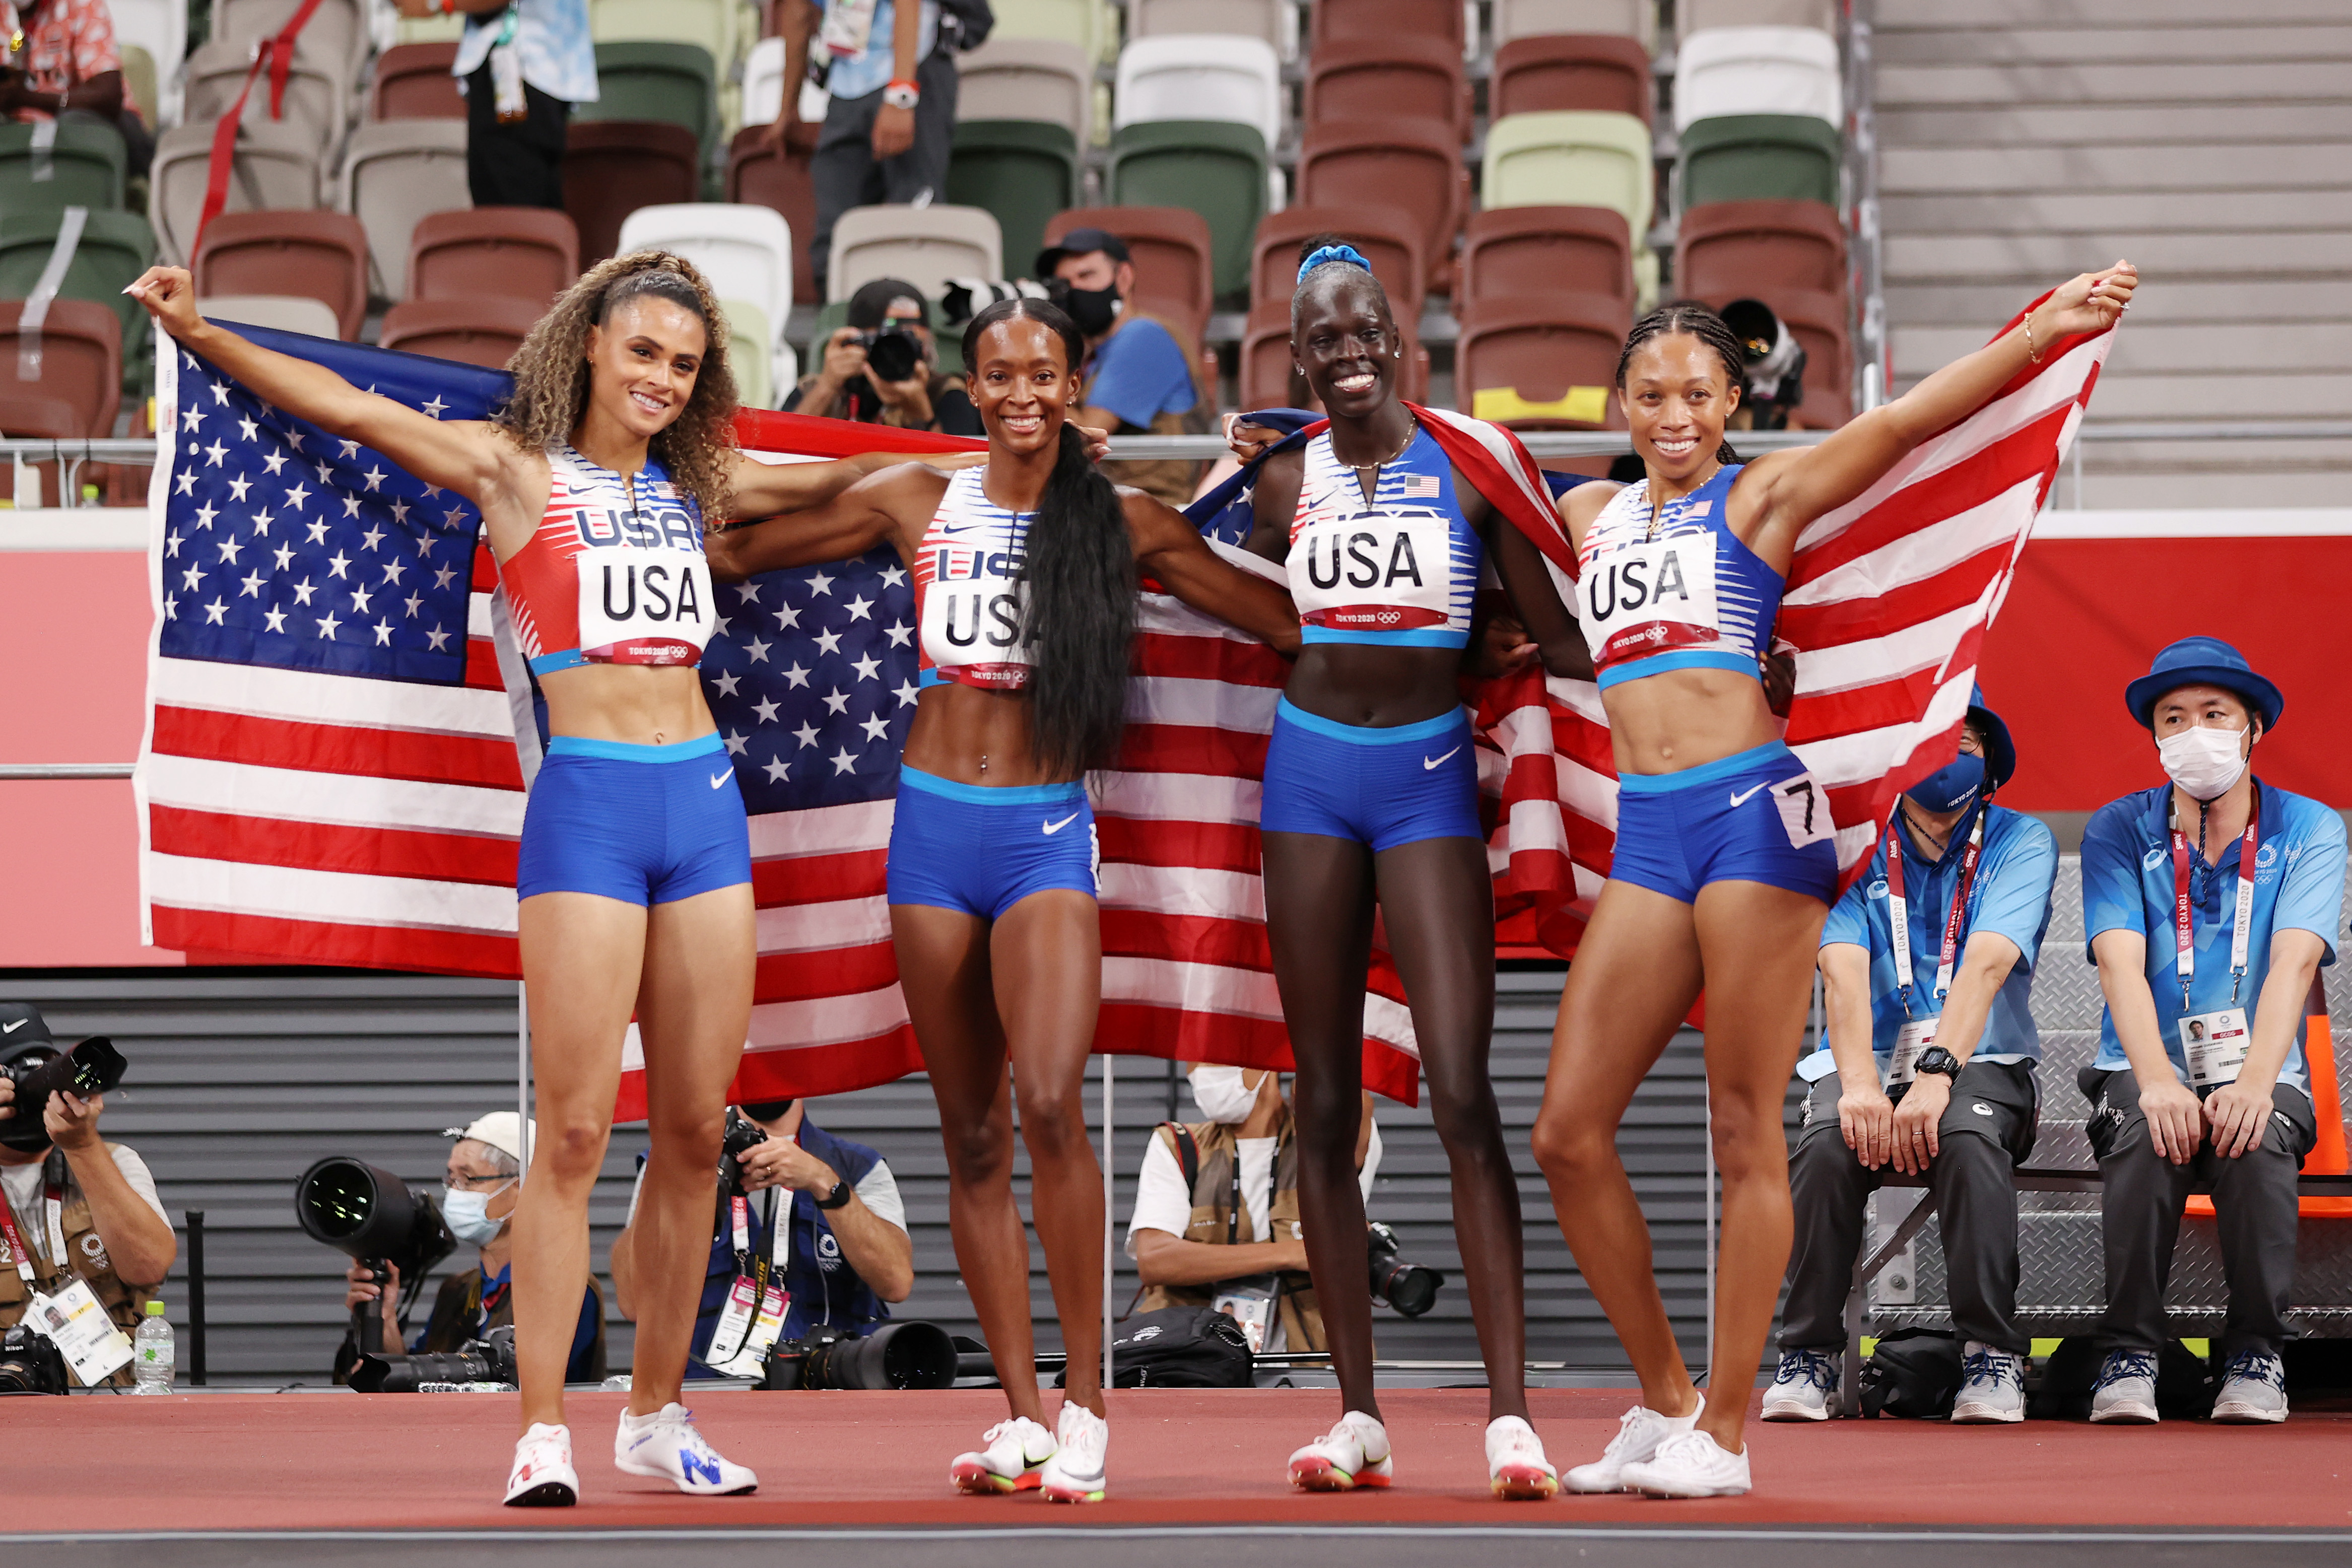 Sydney McLaughlin, Allyson Felix, Dalilah Muhammad and Athing Mu of Team United States celebrate winning the gold medal in the Women' s 4 x 400m Relay Final on day fifteen of the Tokyo 2020 Olympic Games at Olympic Stadium on August 07, 2021 in Tokyo, Japan.